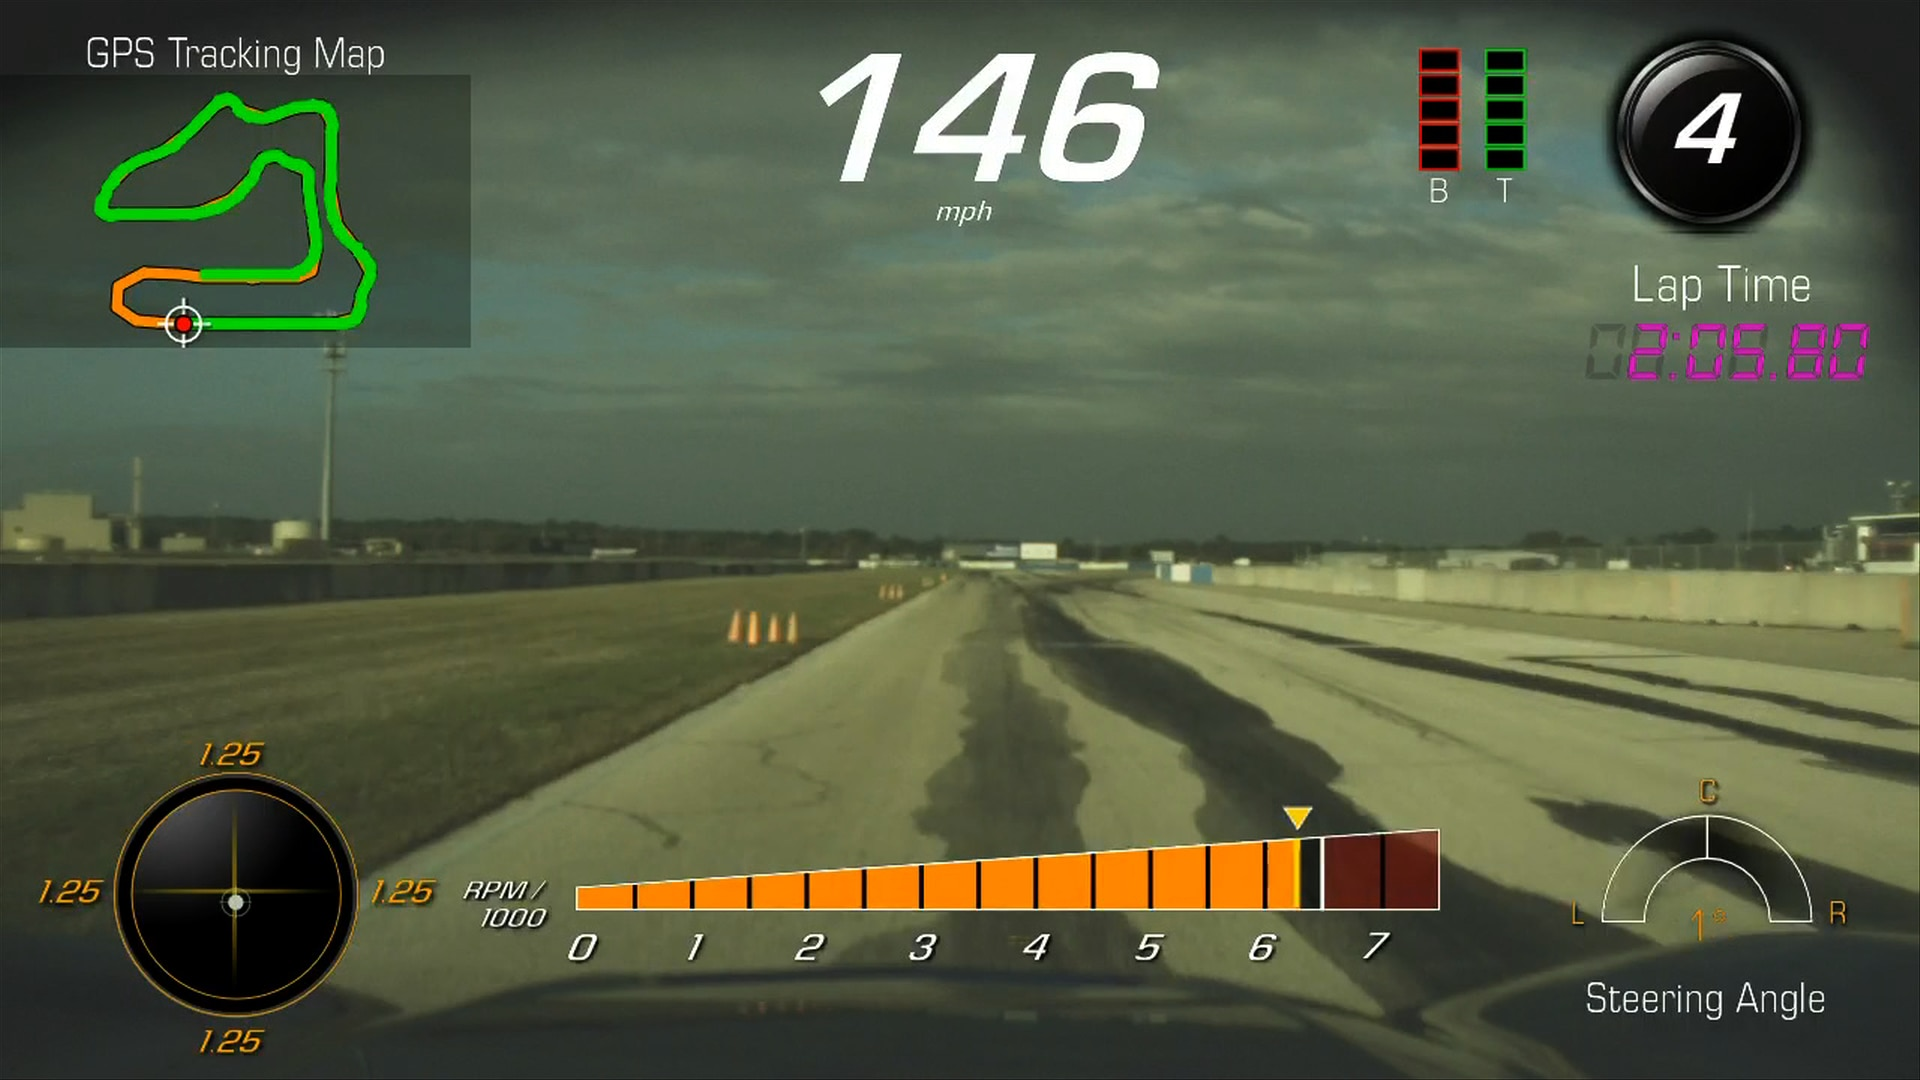 2015 Chevrolet Corvette Performance Data Recorder Topspeed 02